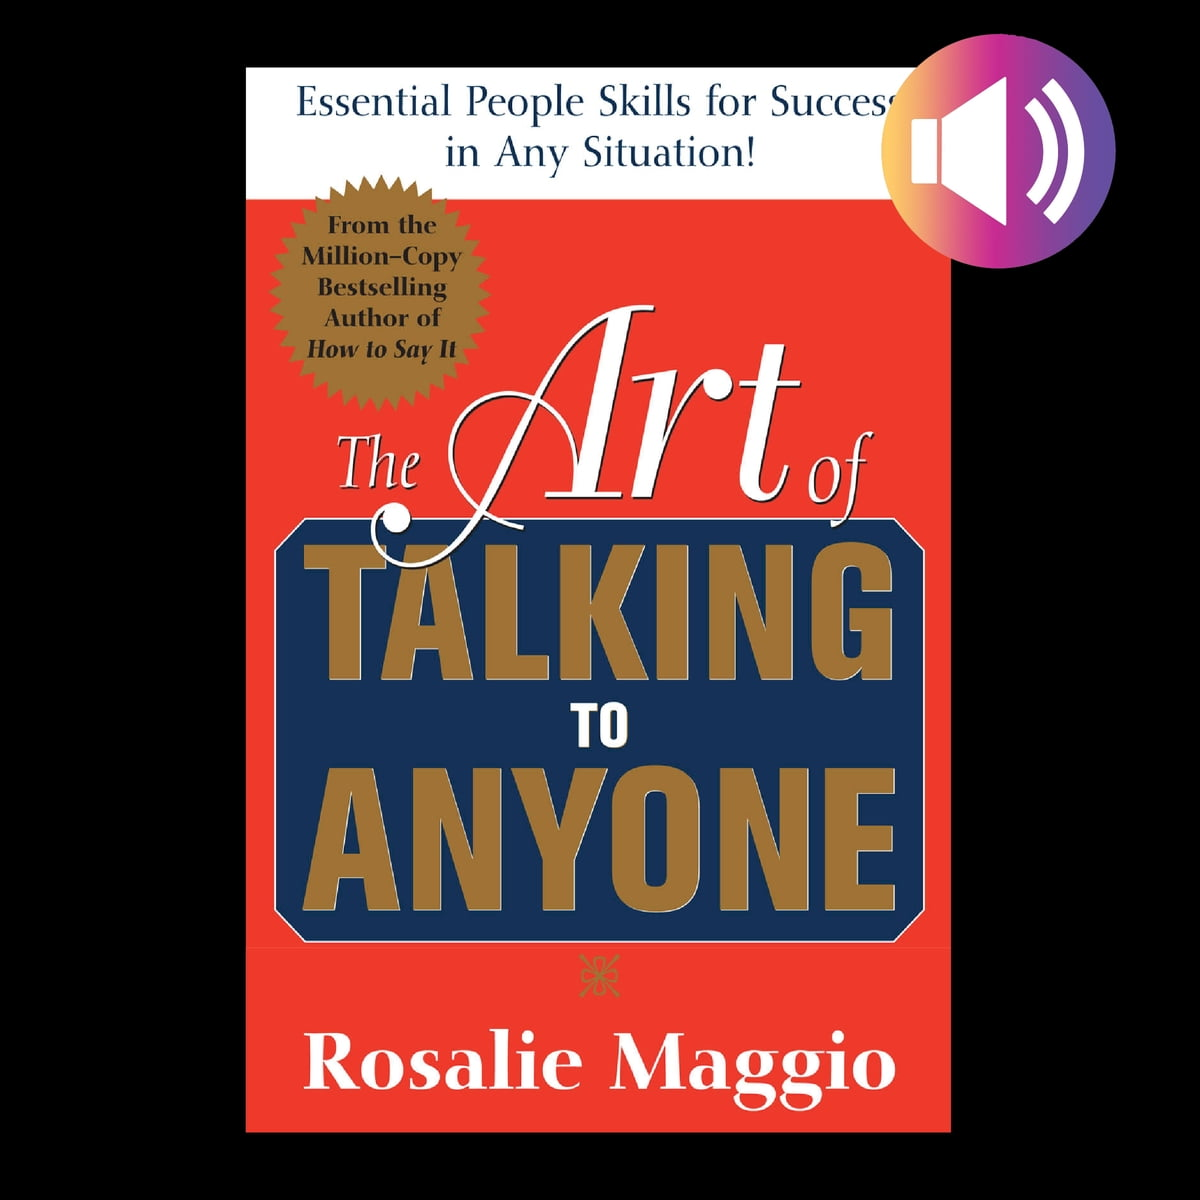 Essential People Skills for Success in Any Situation The Art of Talking to Anyone